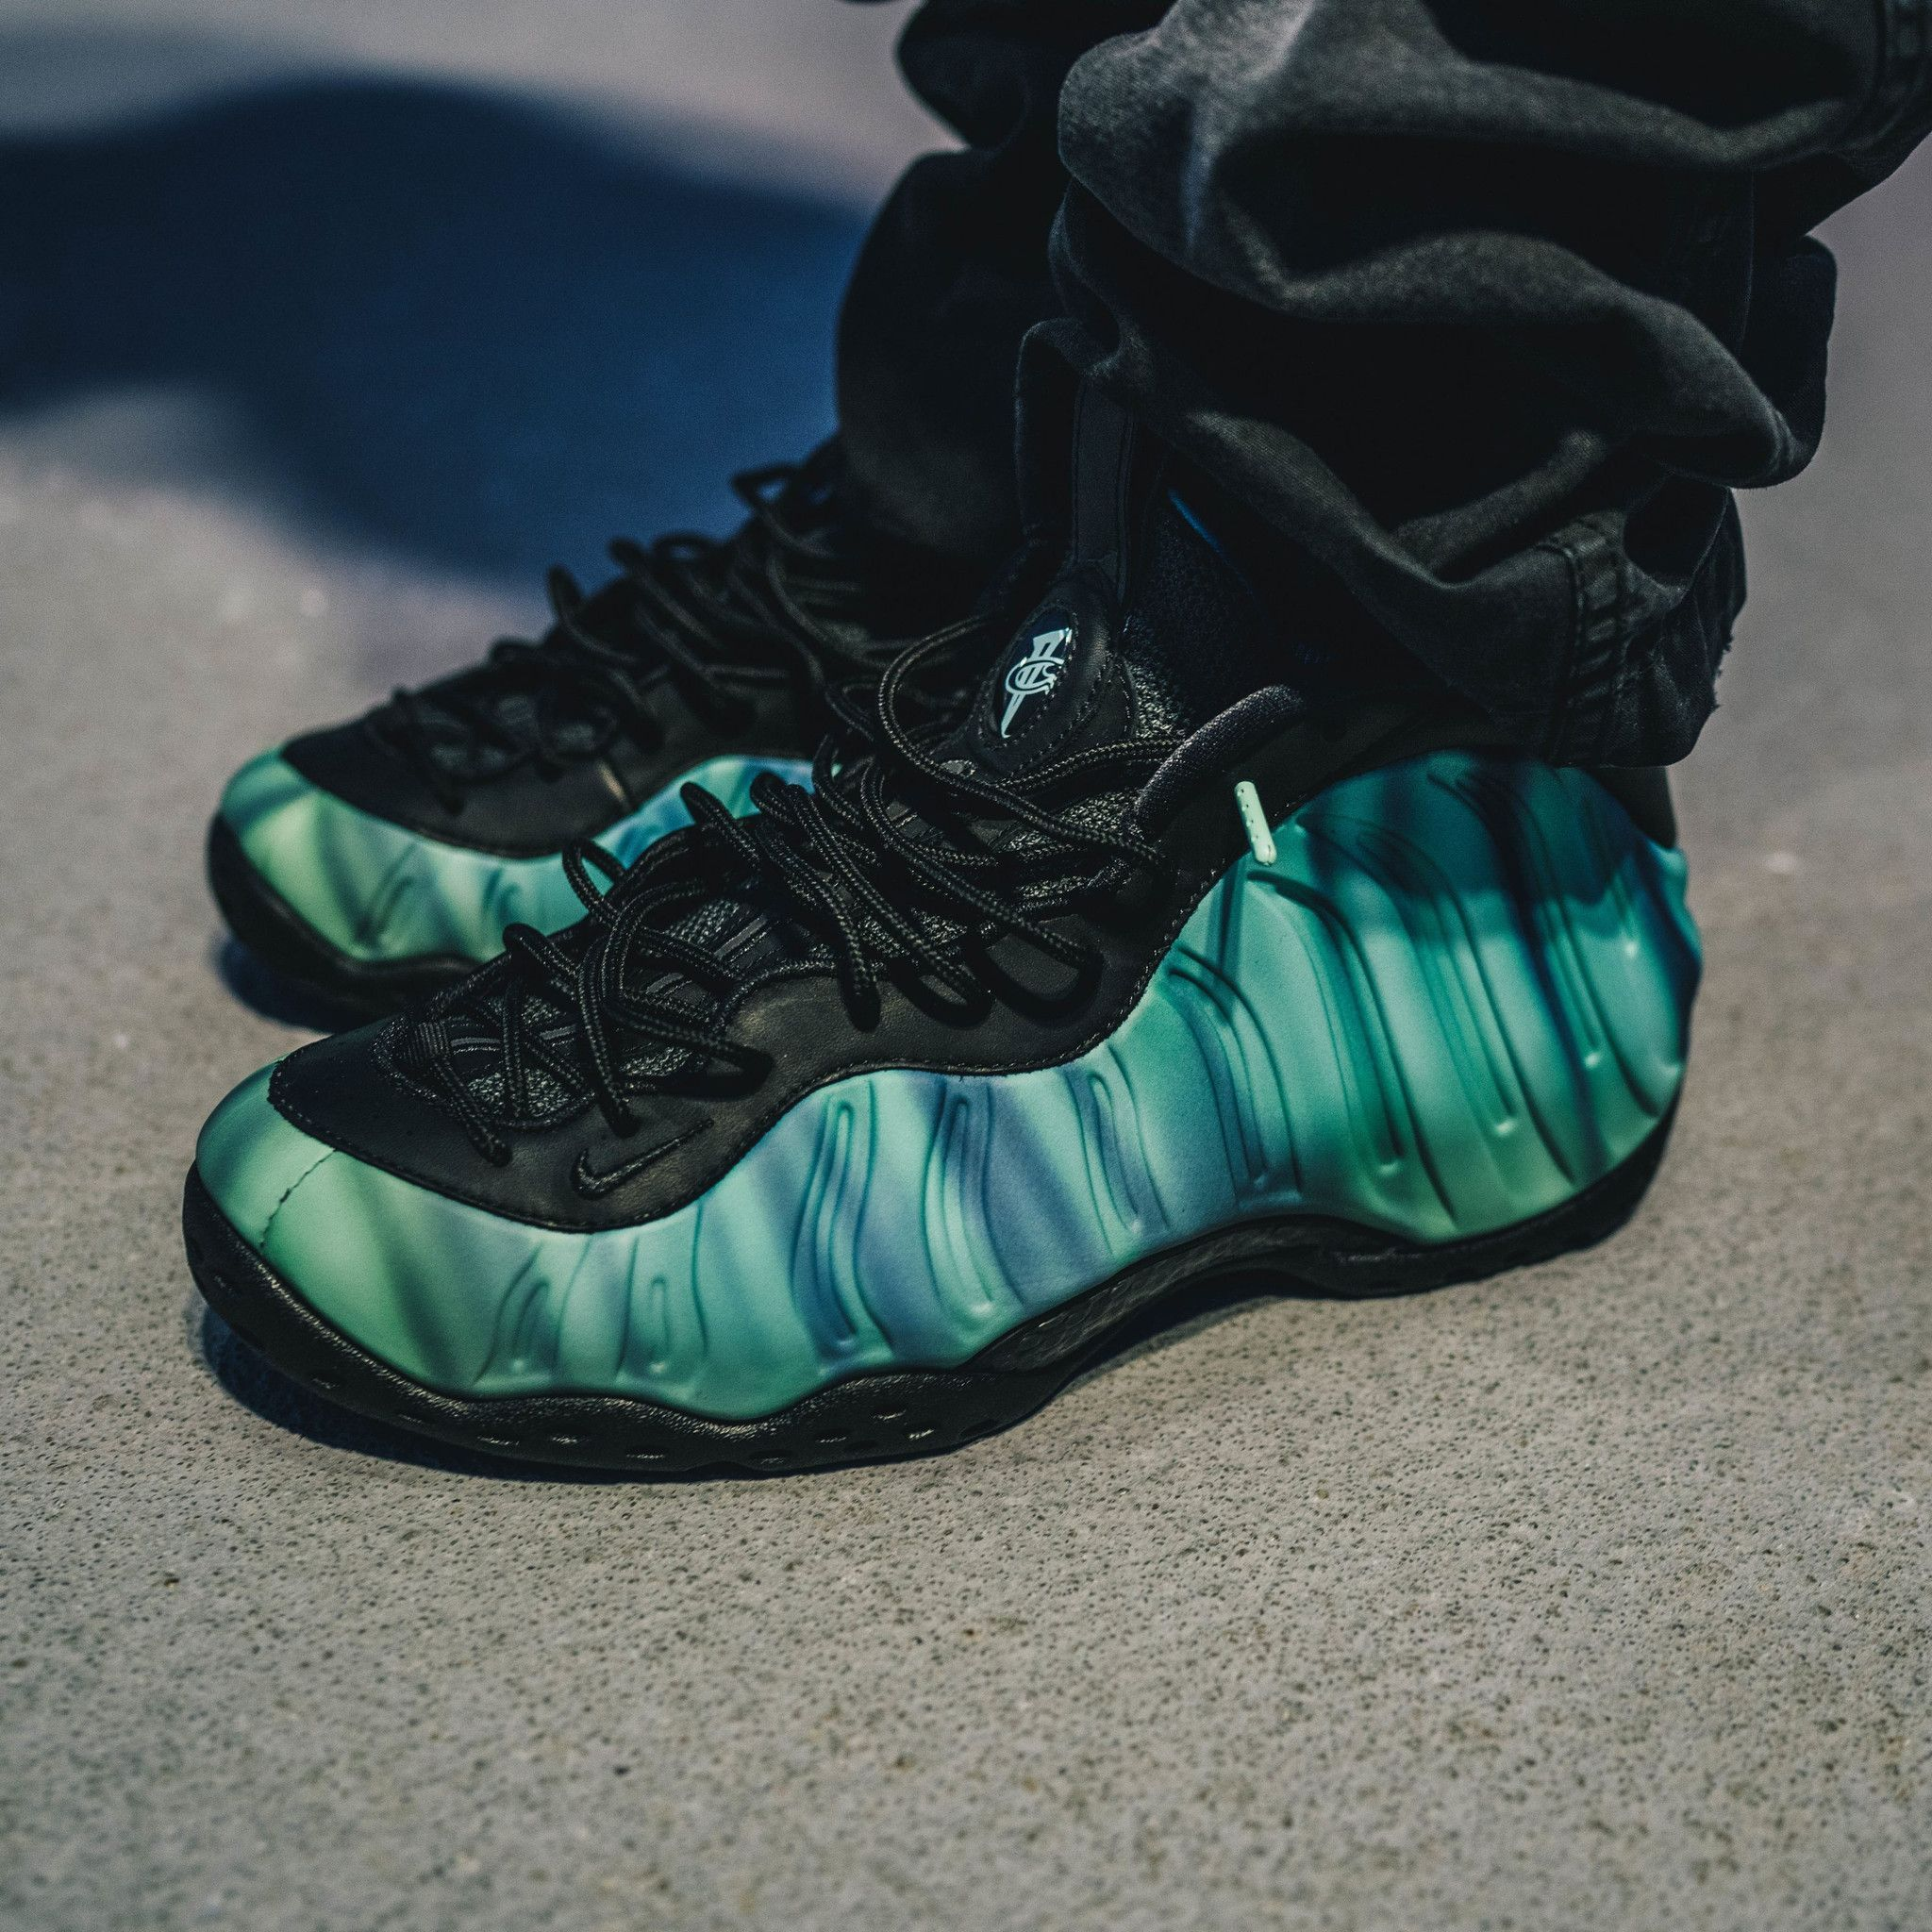 Nike Foamposite One Northern Lights All Star 2016